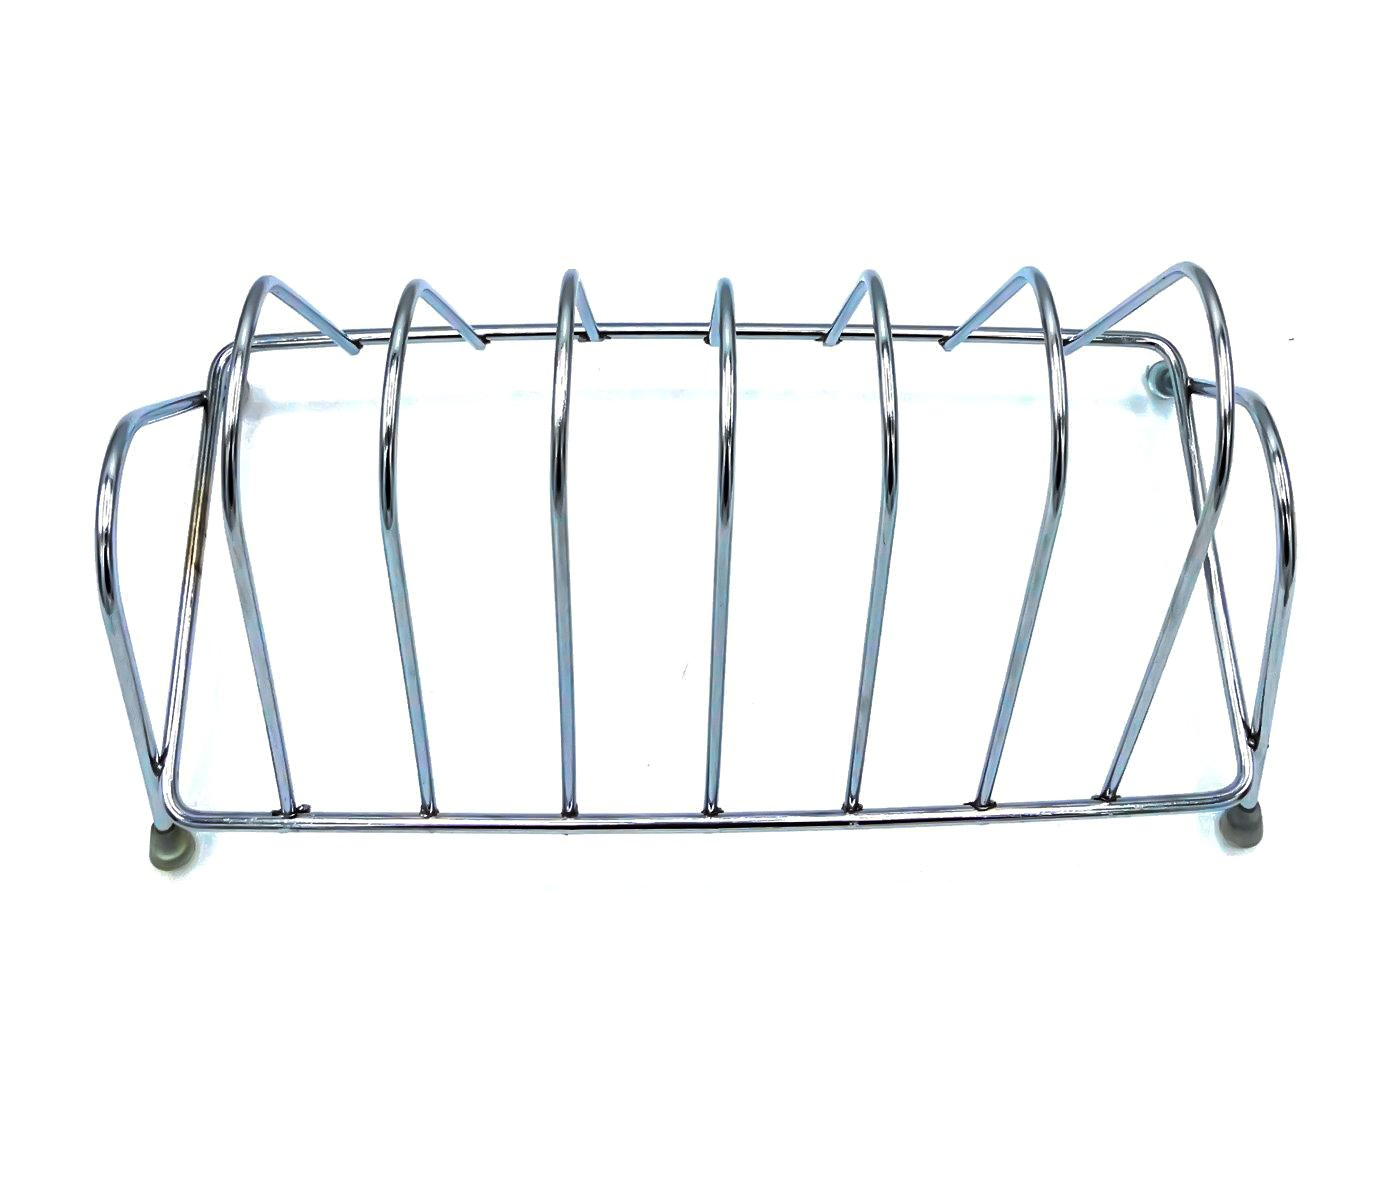 Stainless Steel Square Plate Rack Stand Holder for Kitchen